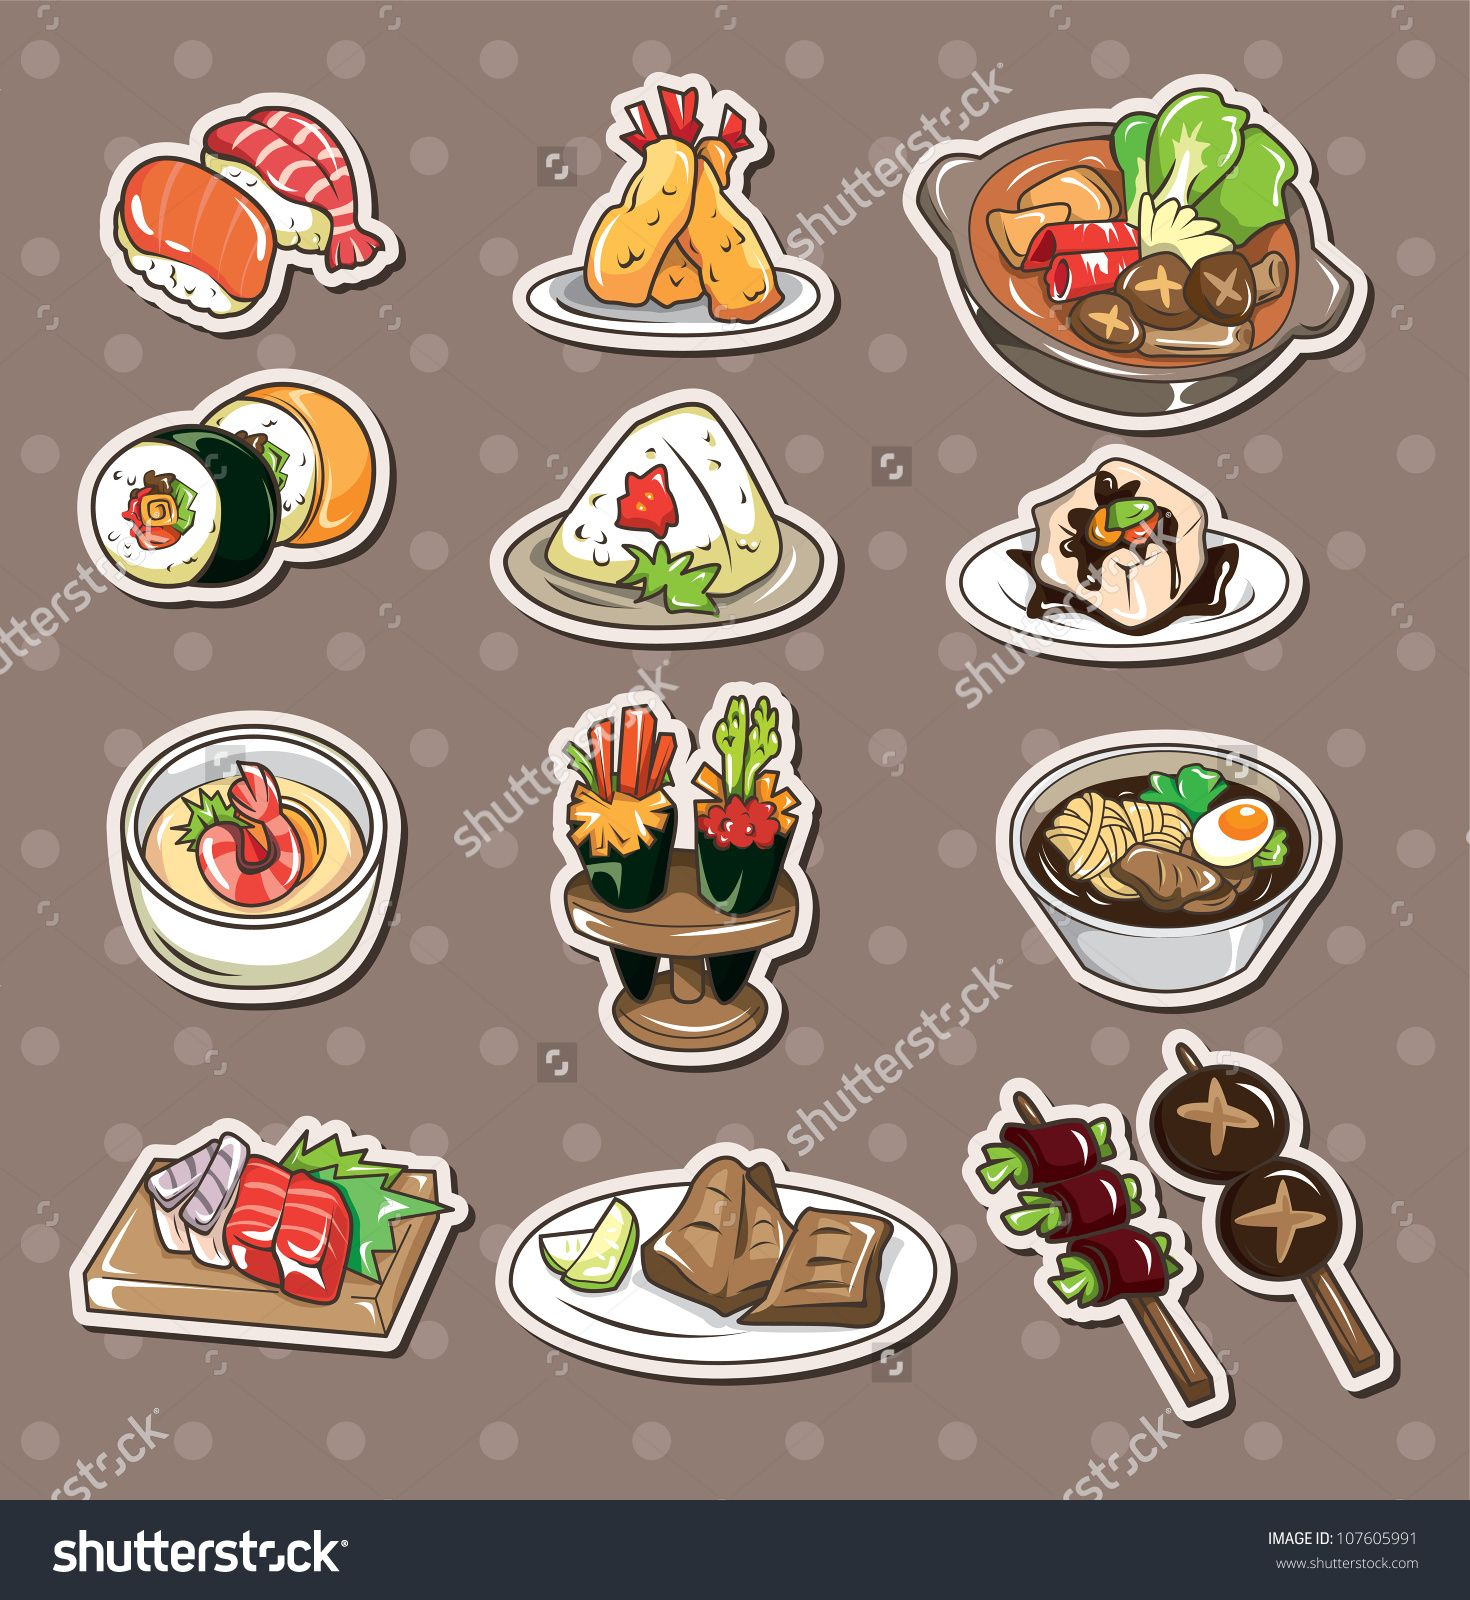 watercolor japanese food - Google Search